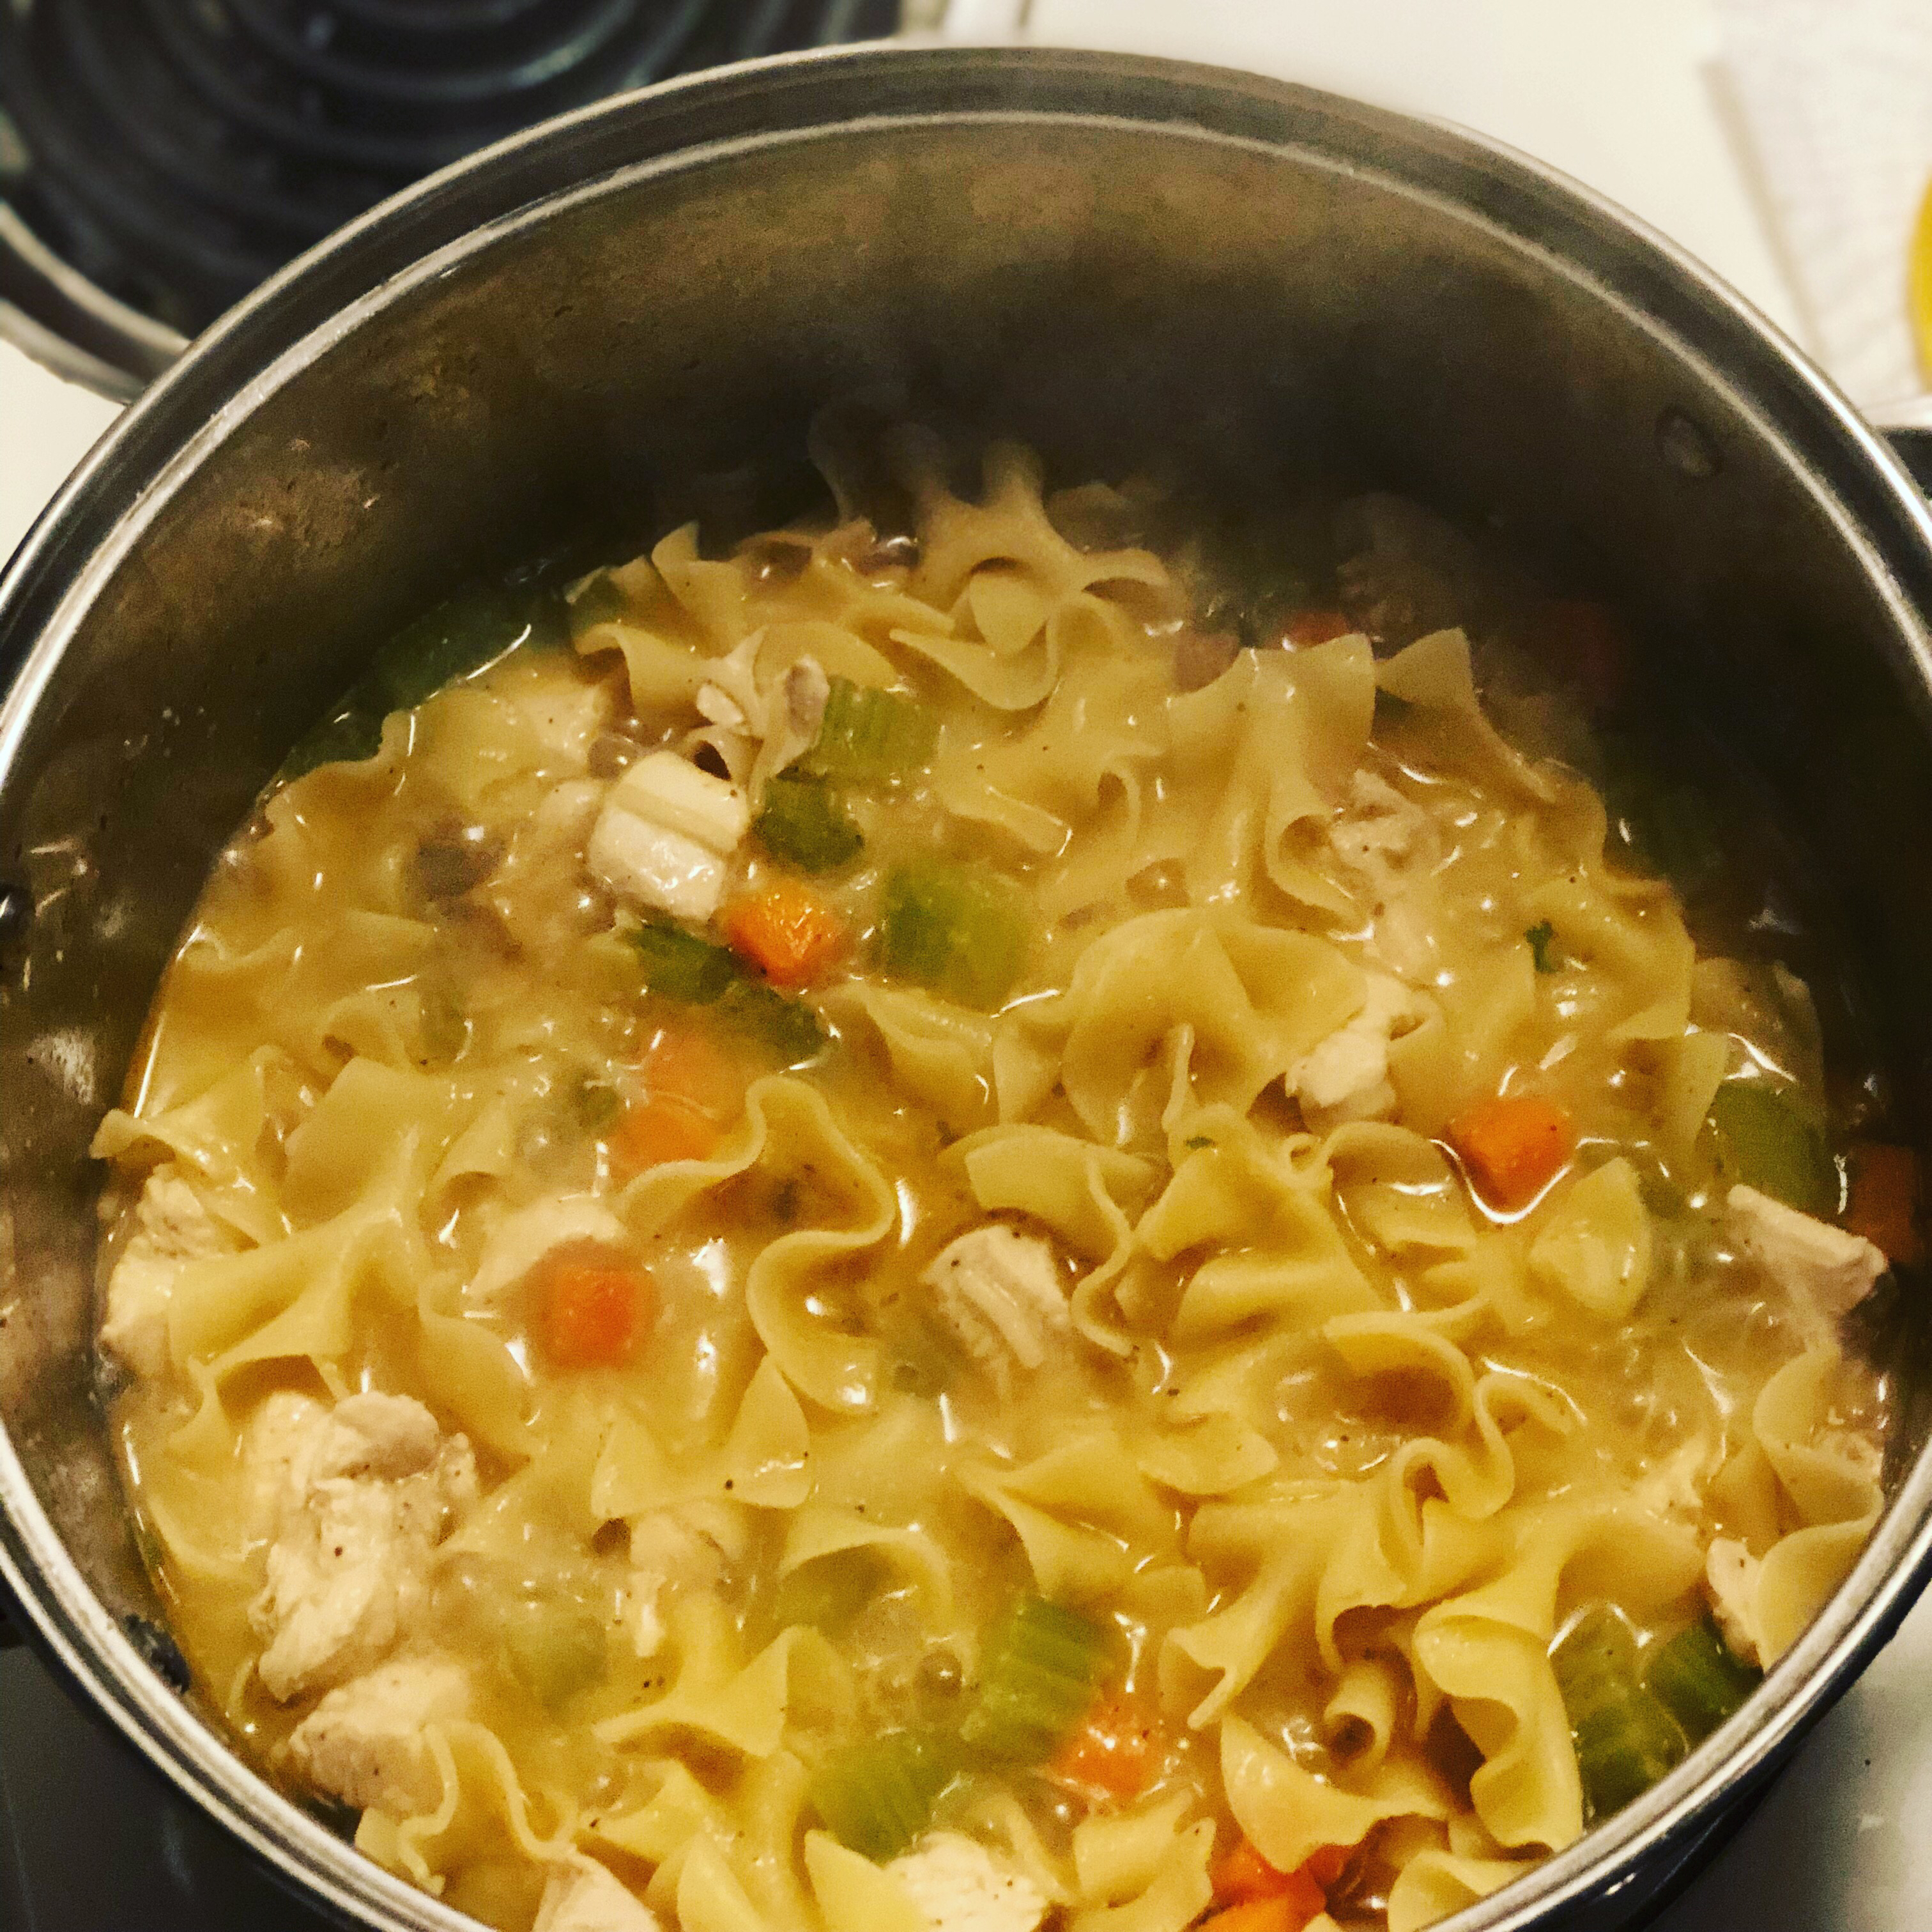 Jean's Homemade Chicken Noodle Soup